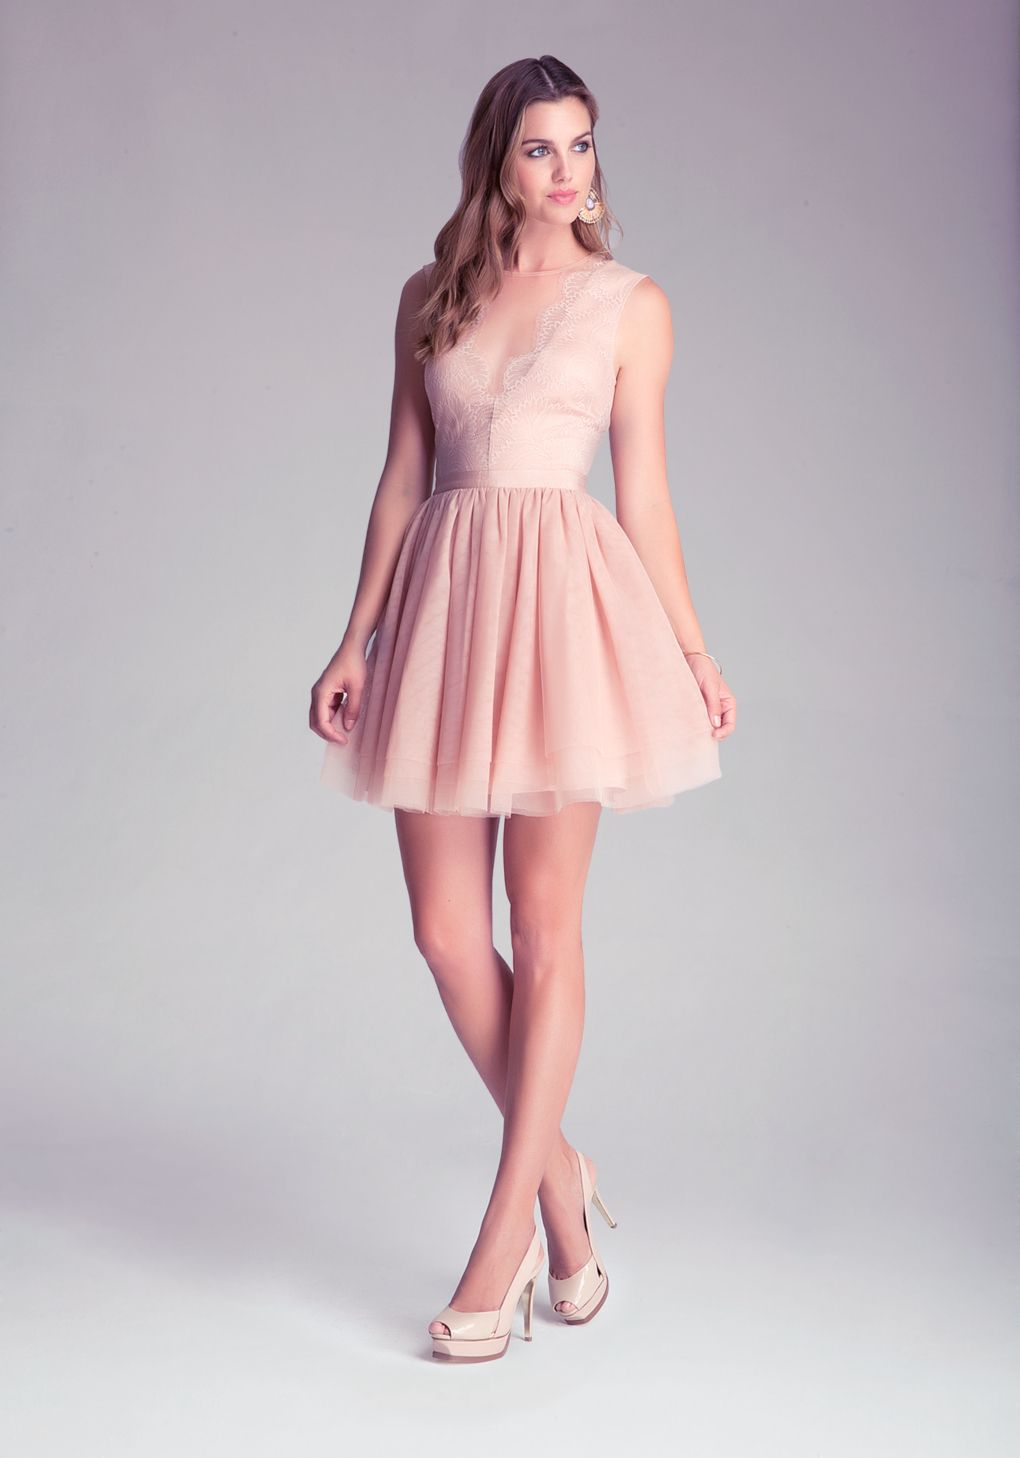 Bebe Flare Puff Skirt Dress in Pink (rose) | Lyst | Dresses | Pinterest